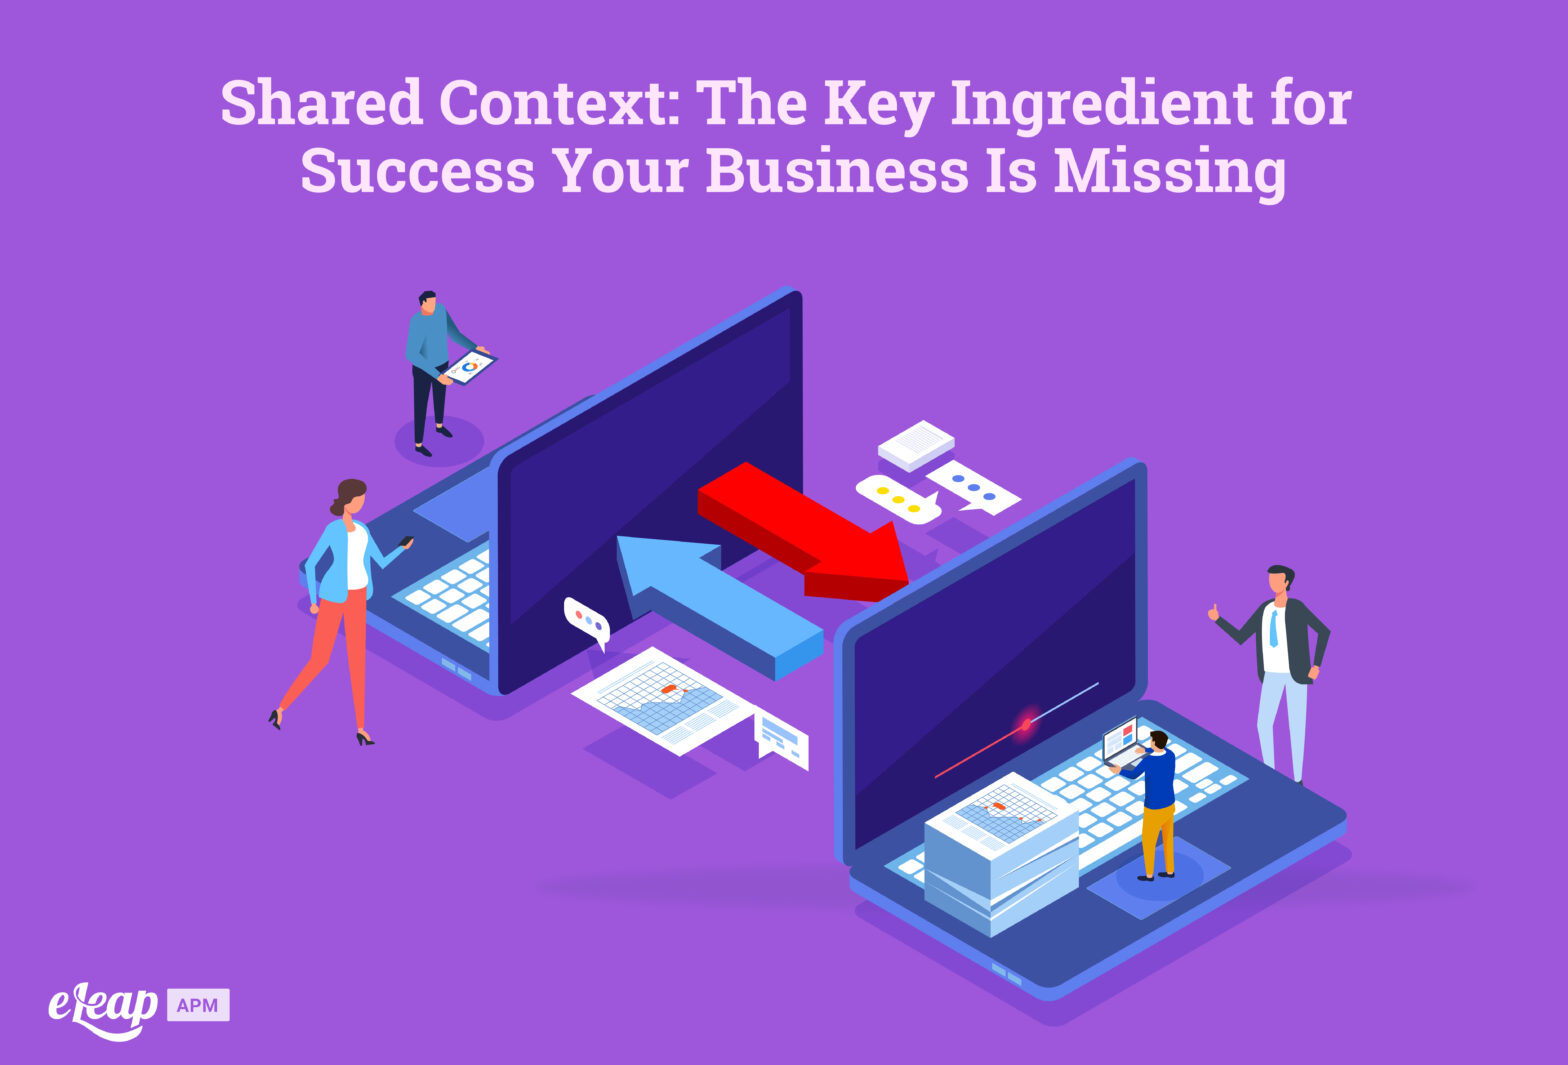 Shared Context: The Key Ingredient for Success Your Business Is Missing